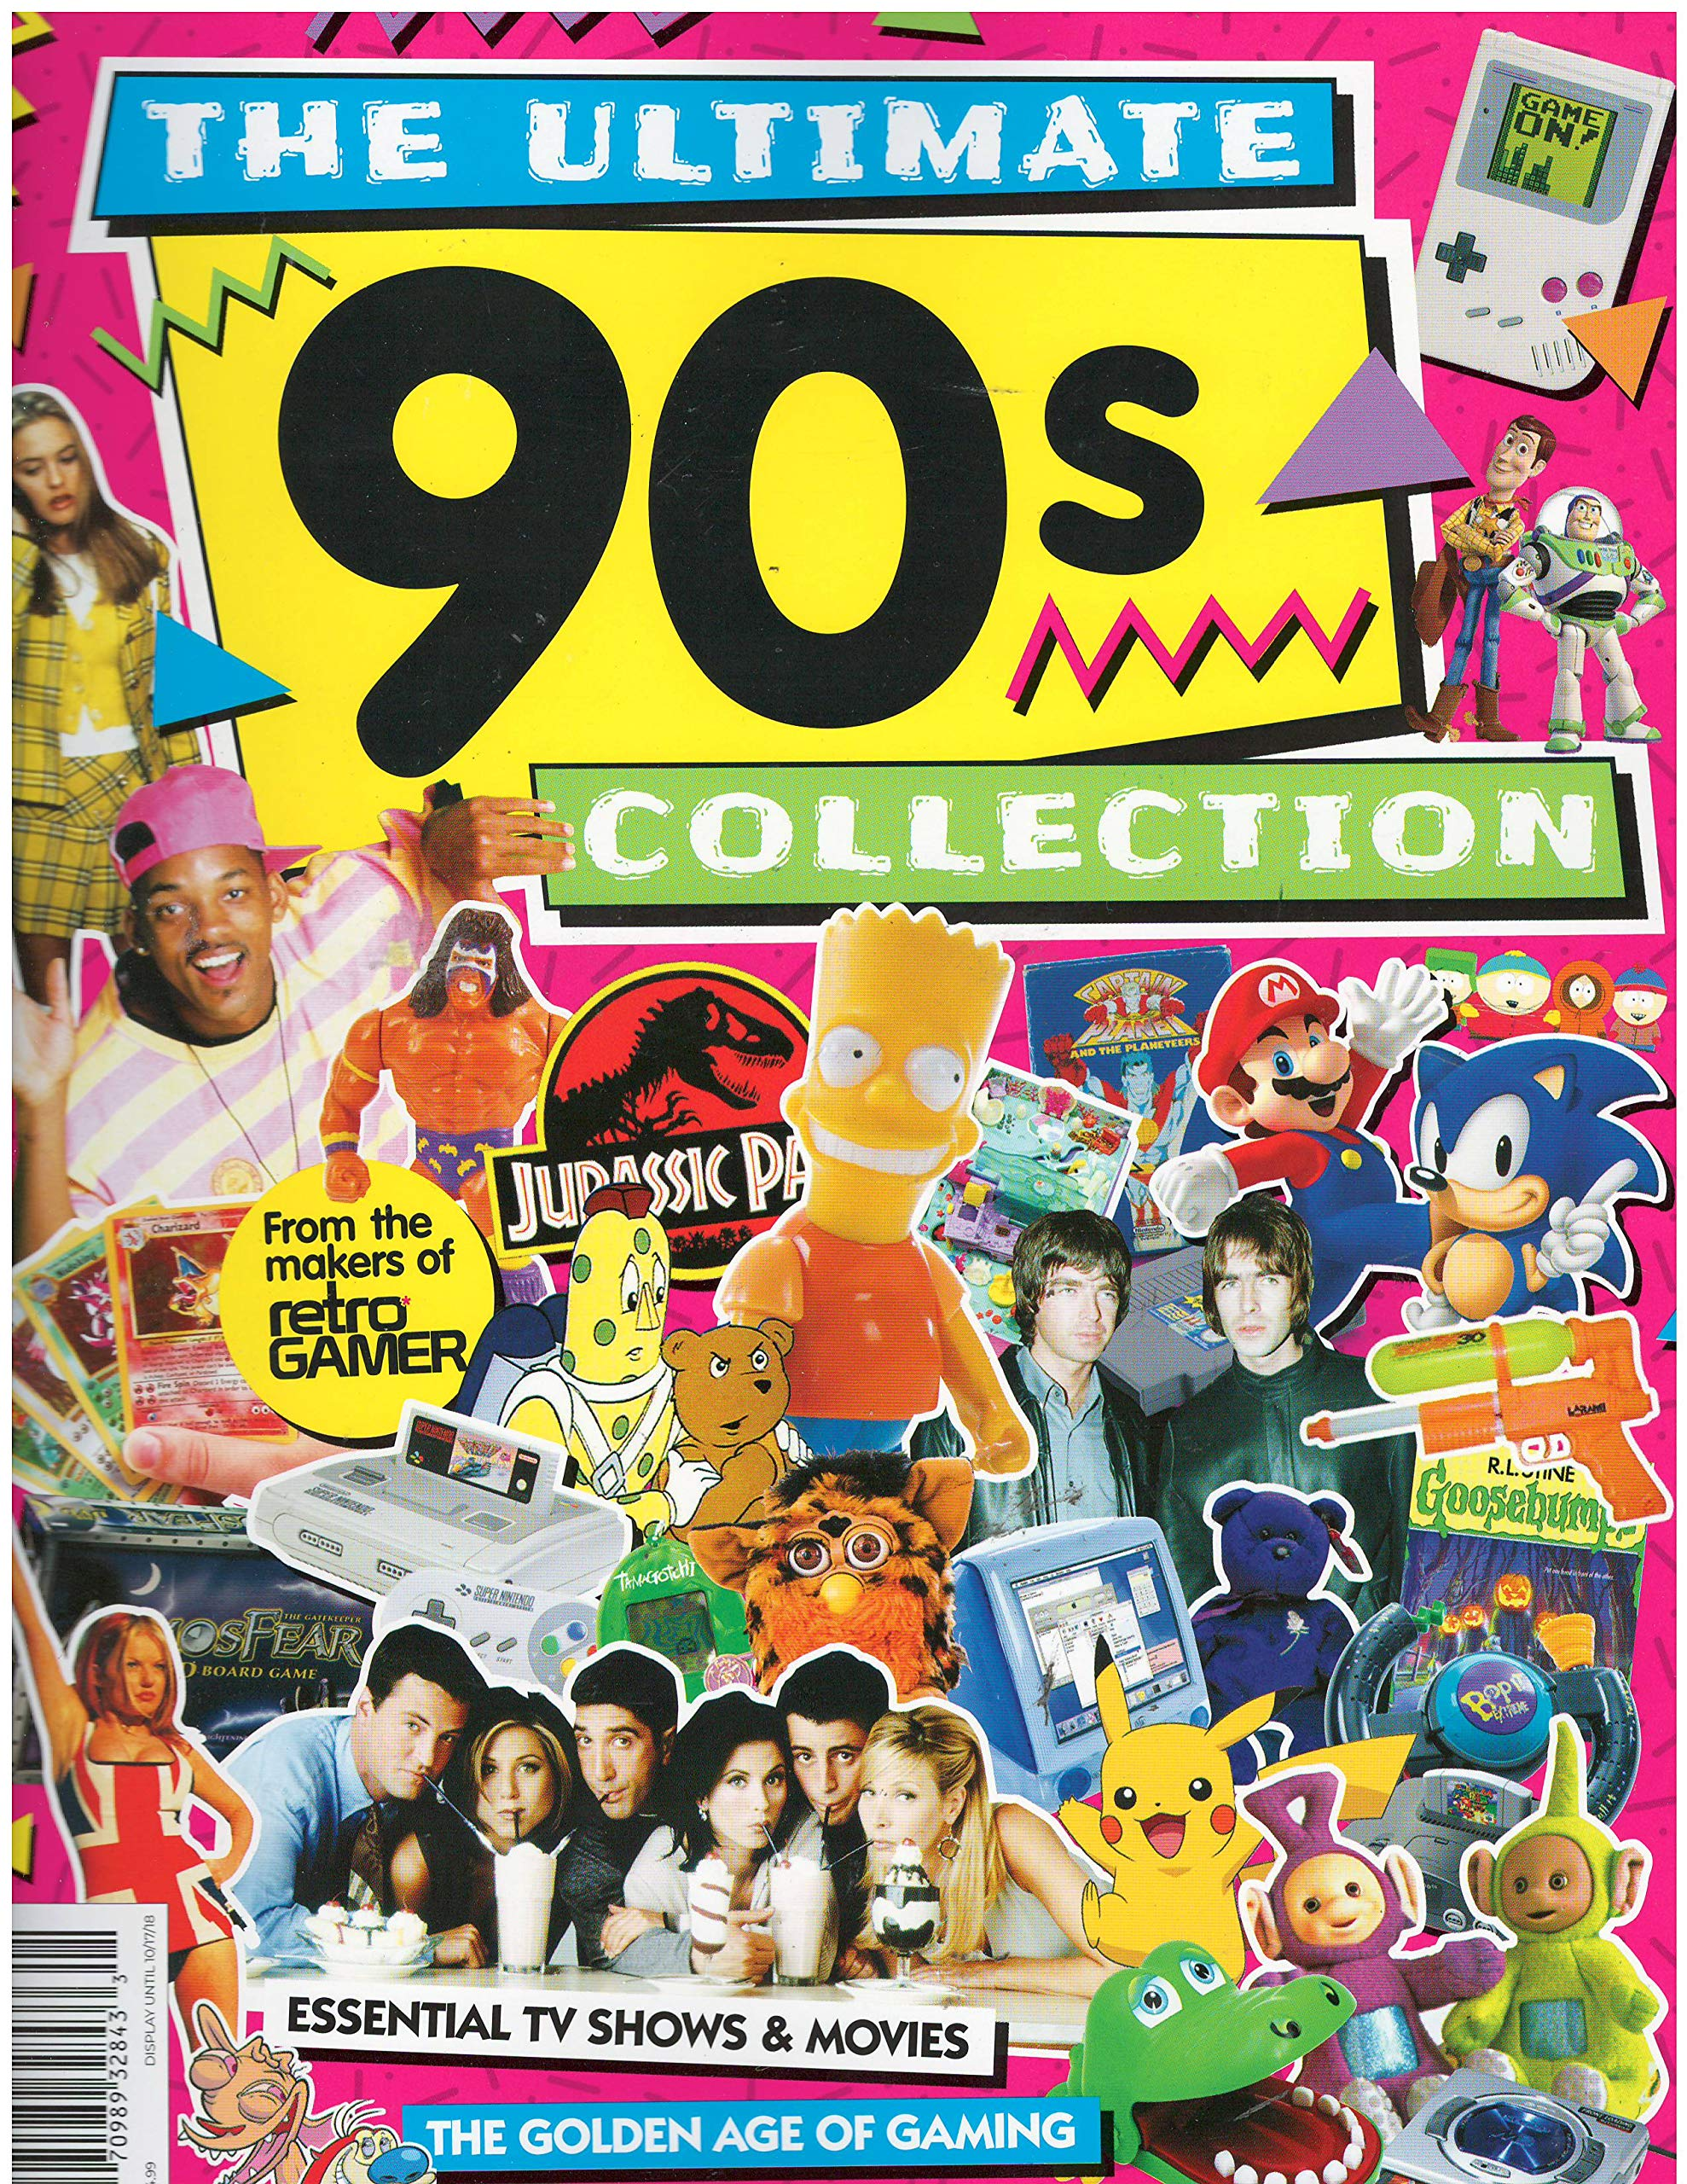 The Ultimate 90s Collection Magazine Retro Gamer: Various: Amazon